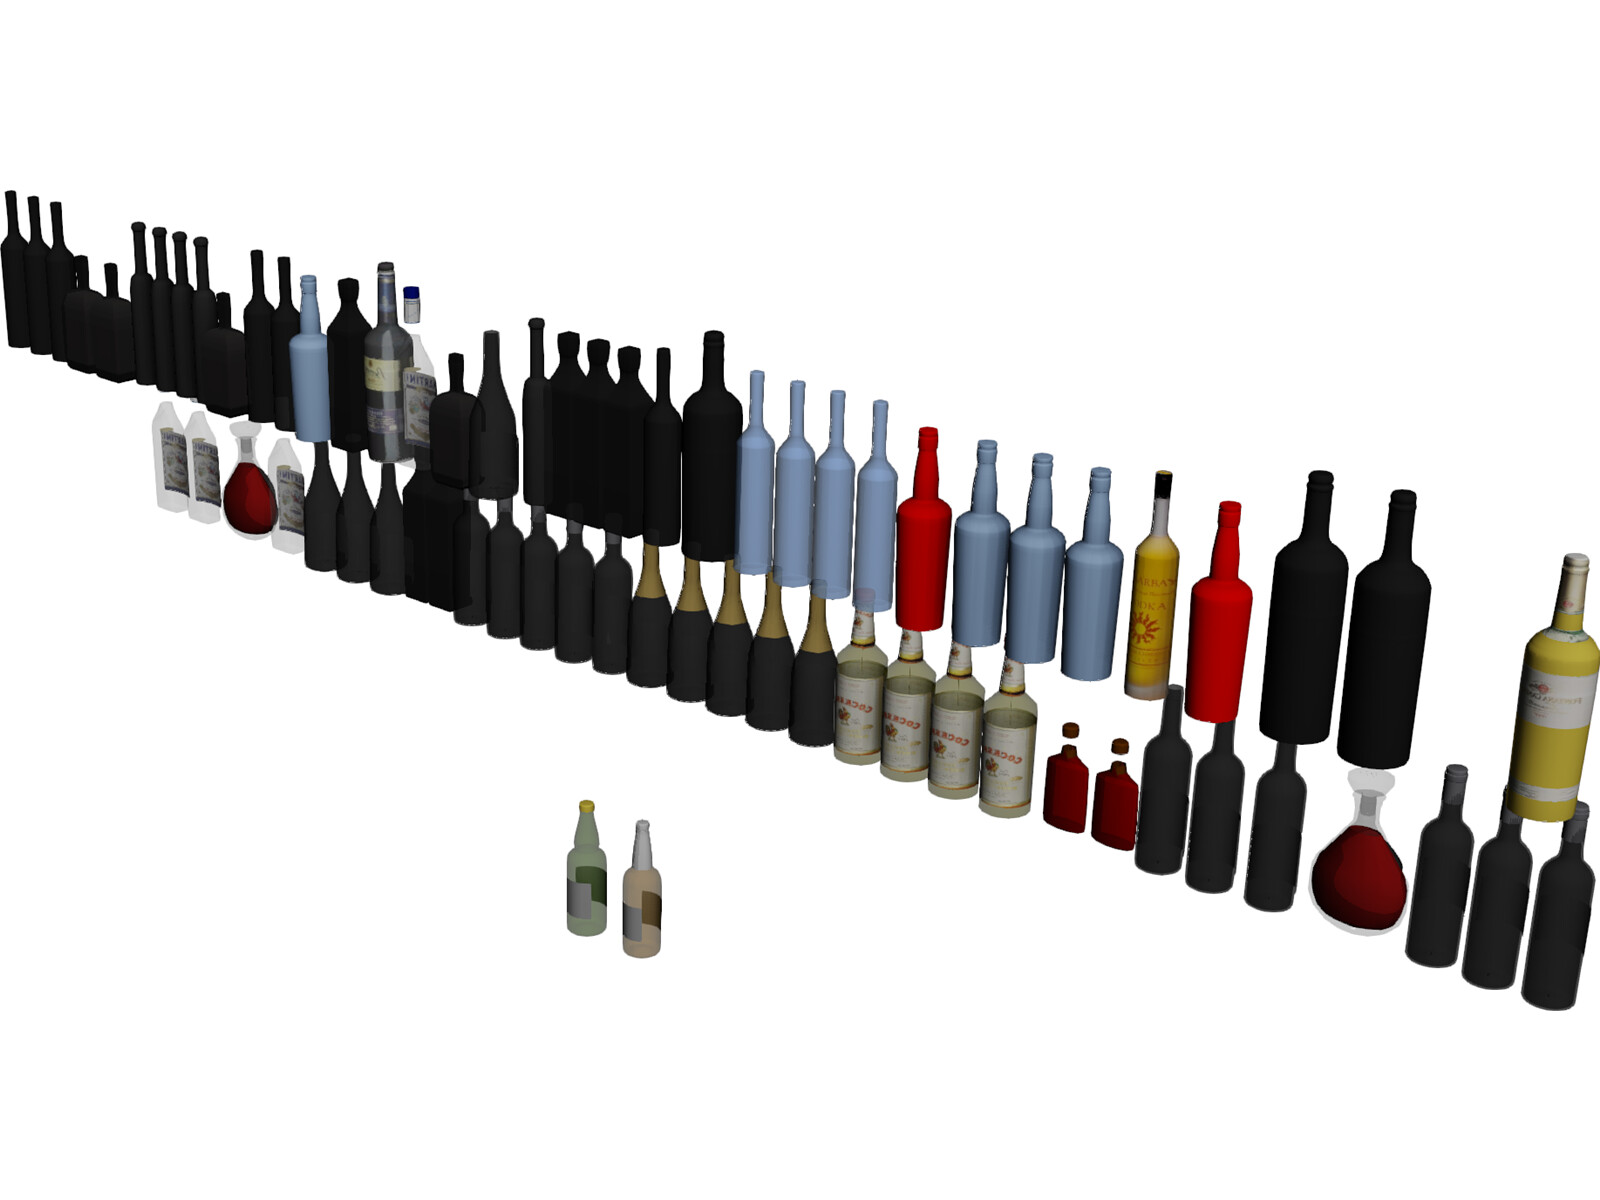 Bar Bottles Collection